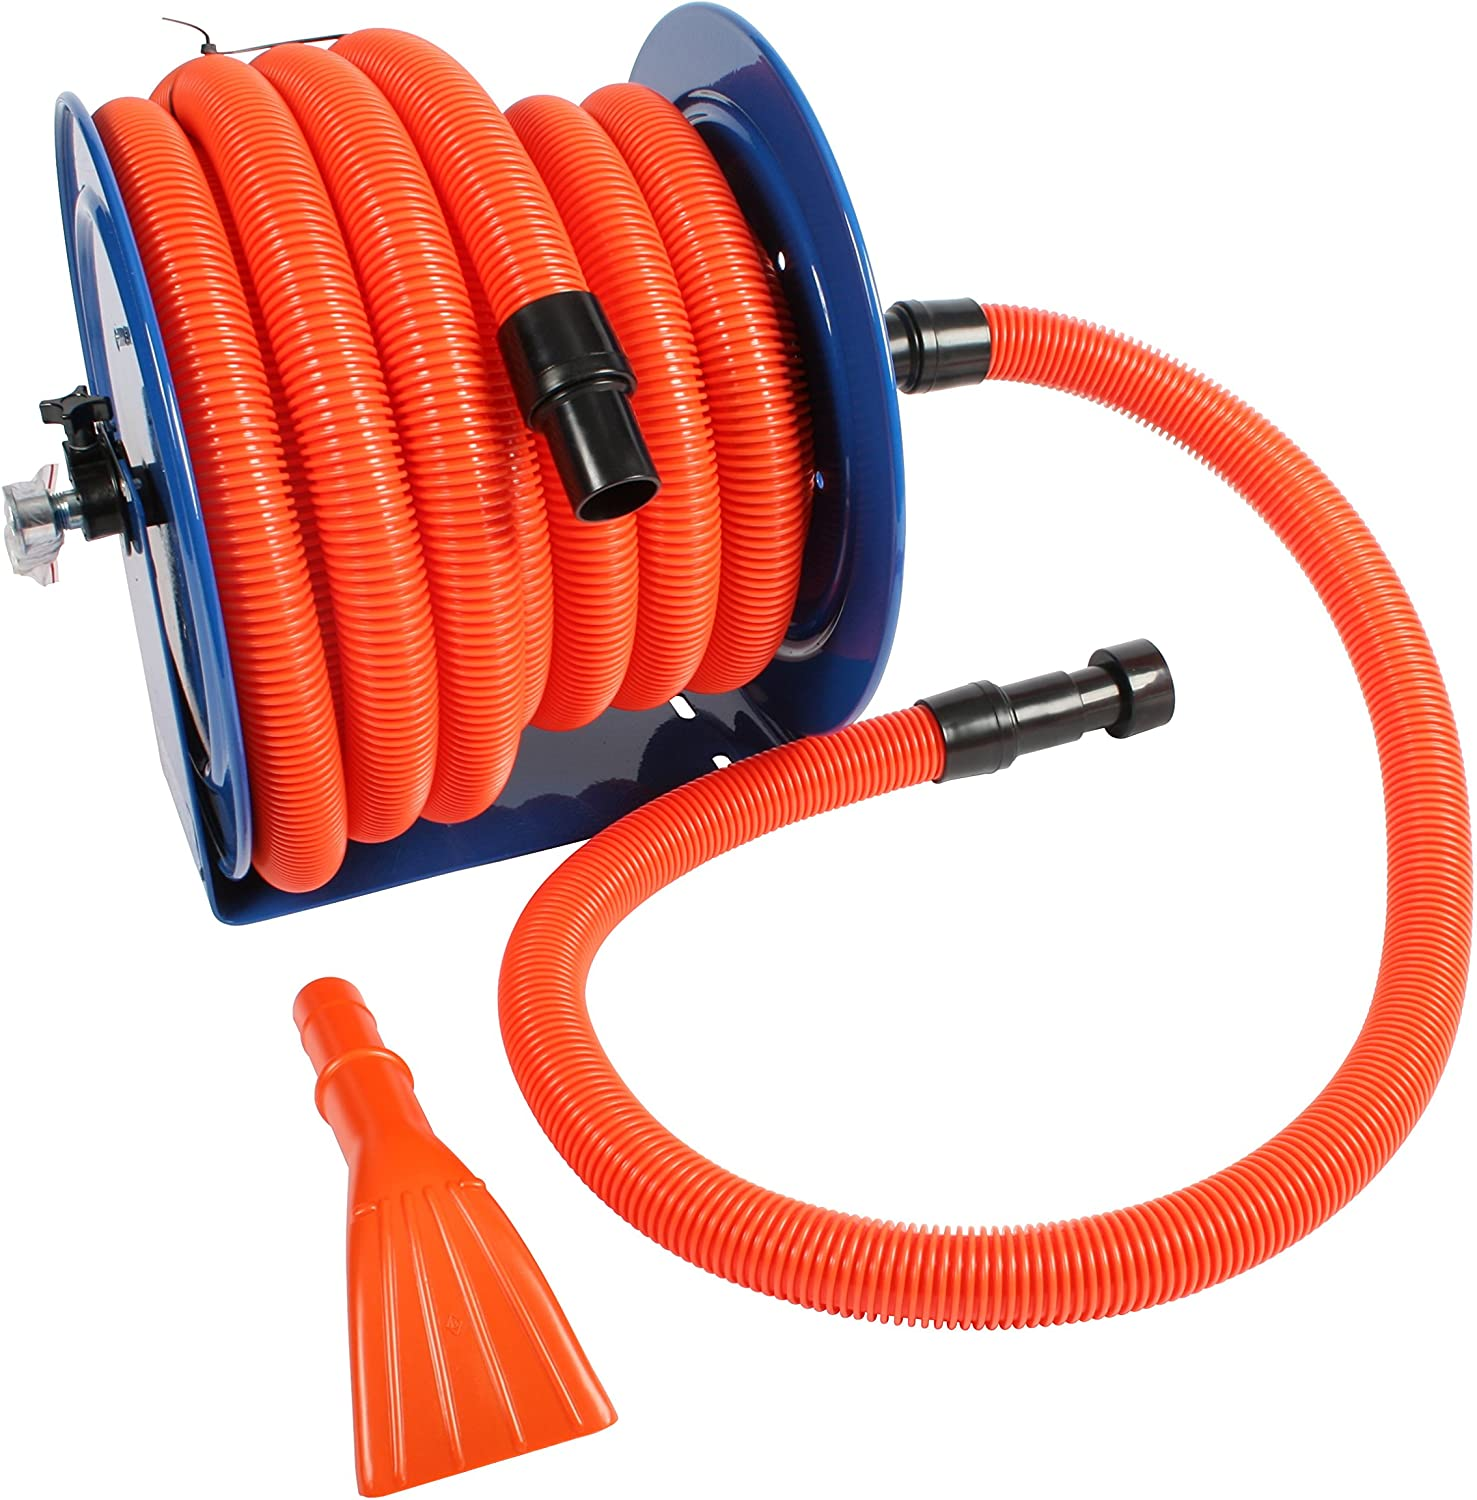 Cen-Tec Systems Industrial Hose Reel and 50 Ft. Hose for Shop Vacuums